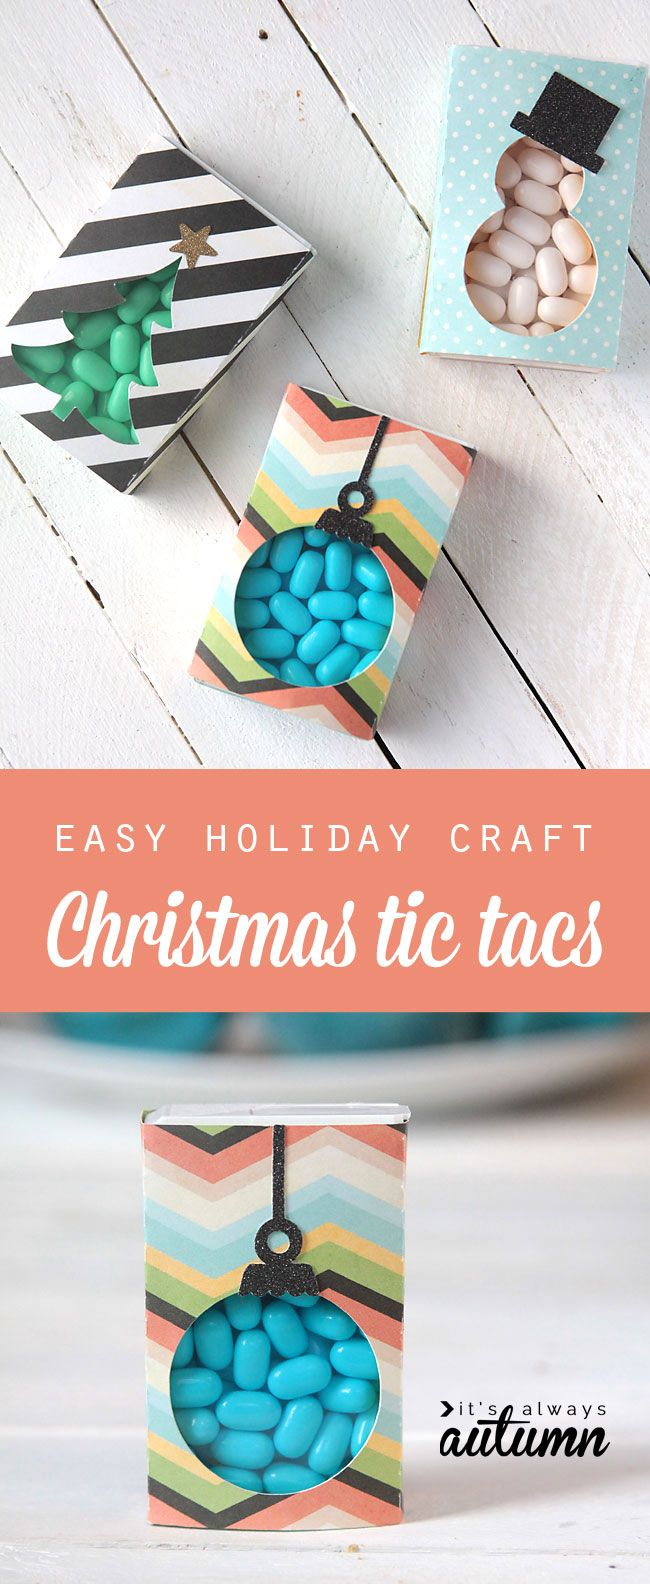 DIY: Christmas tic tacs